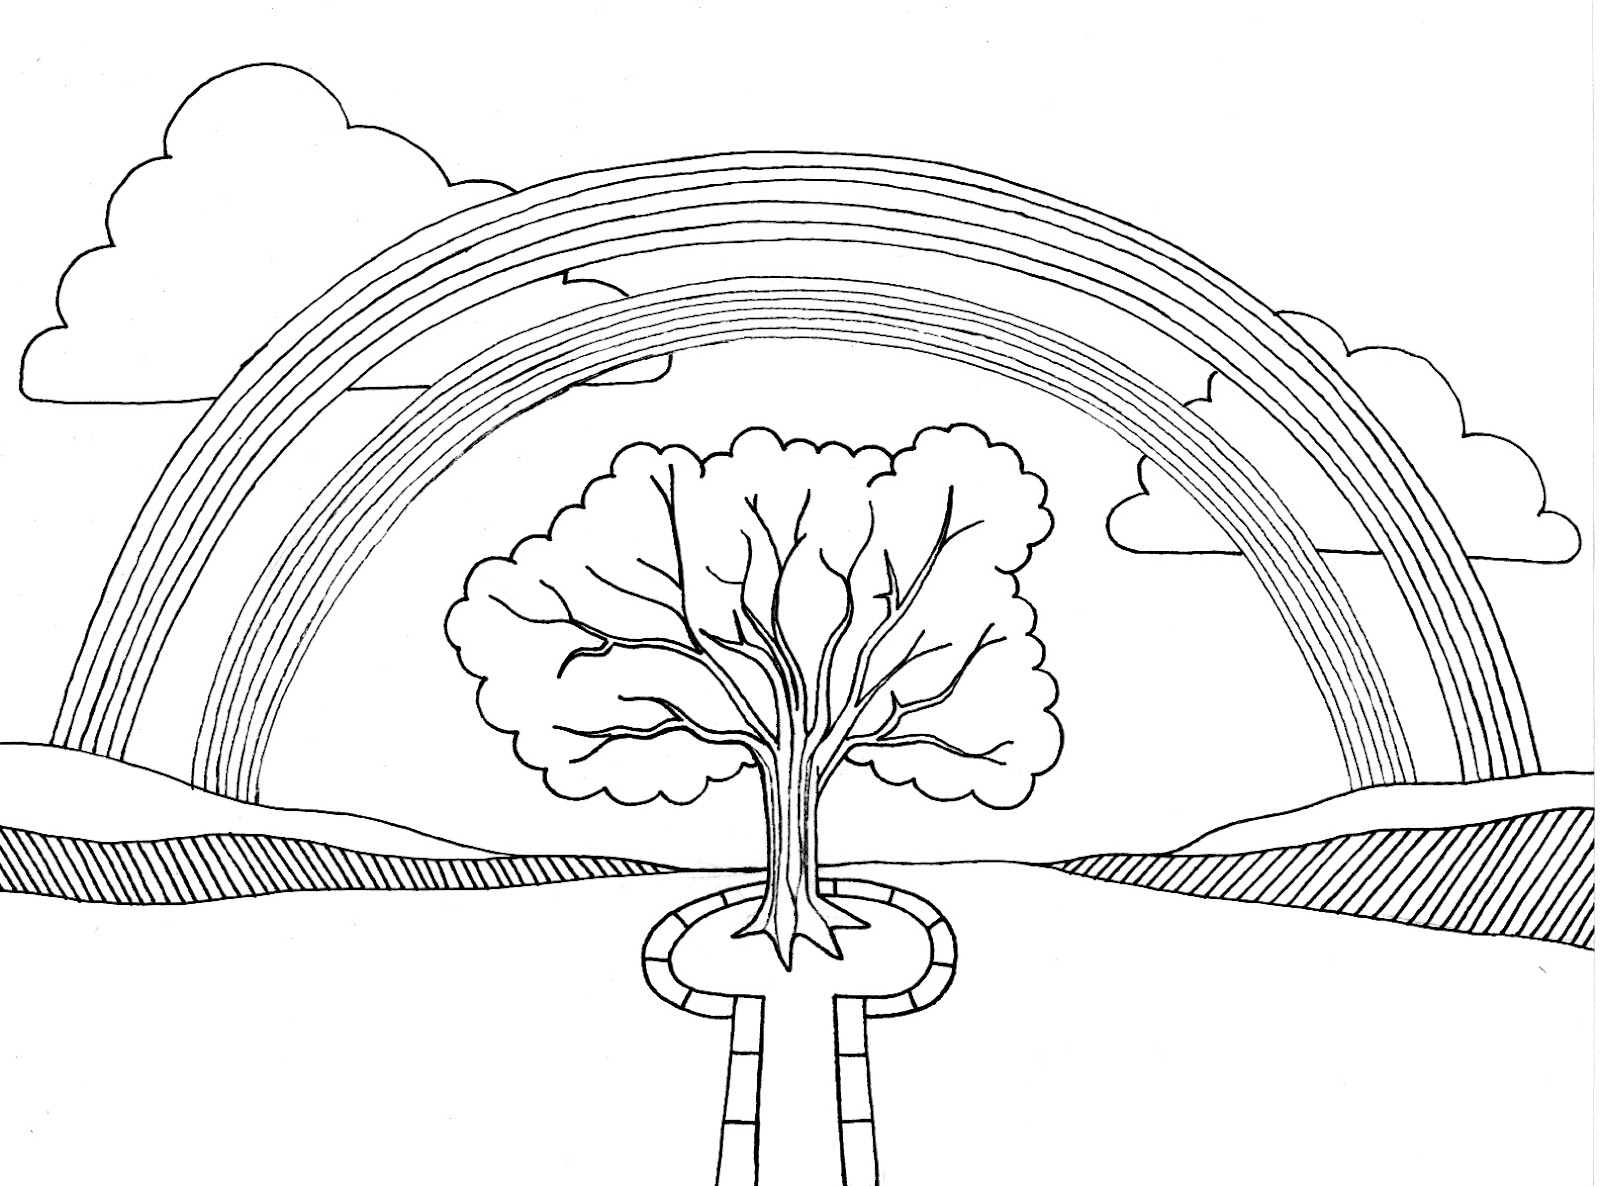 Rainbow coloring page for kids